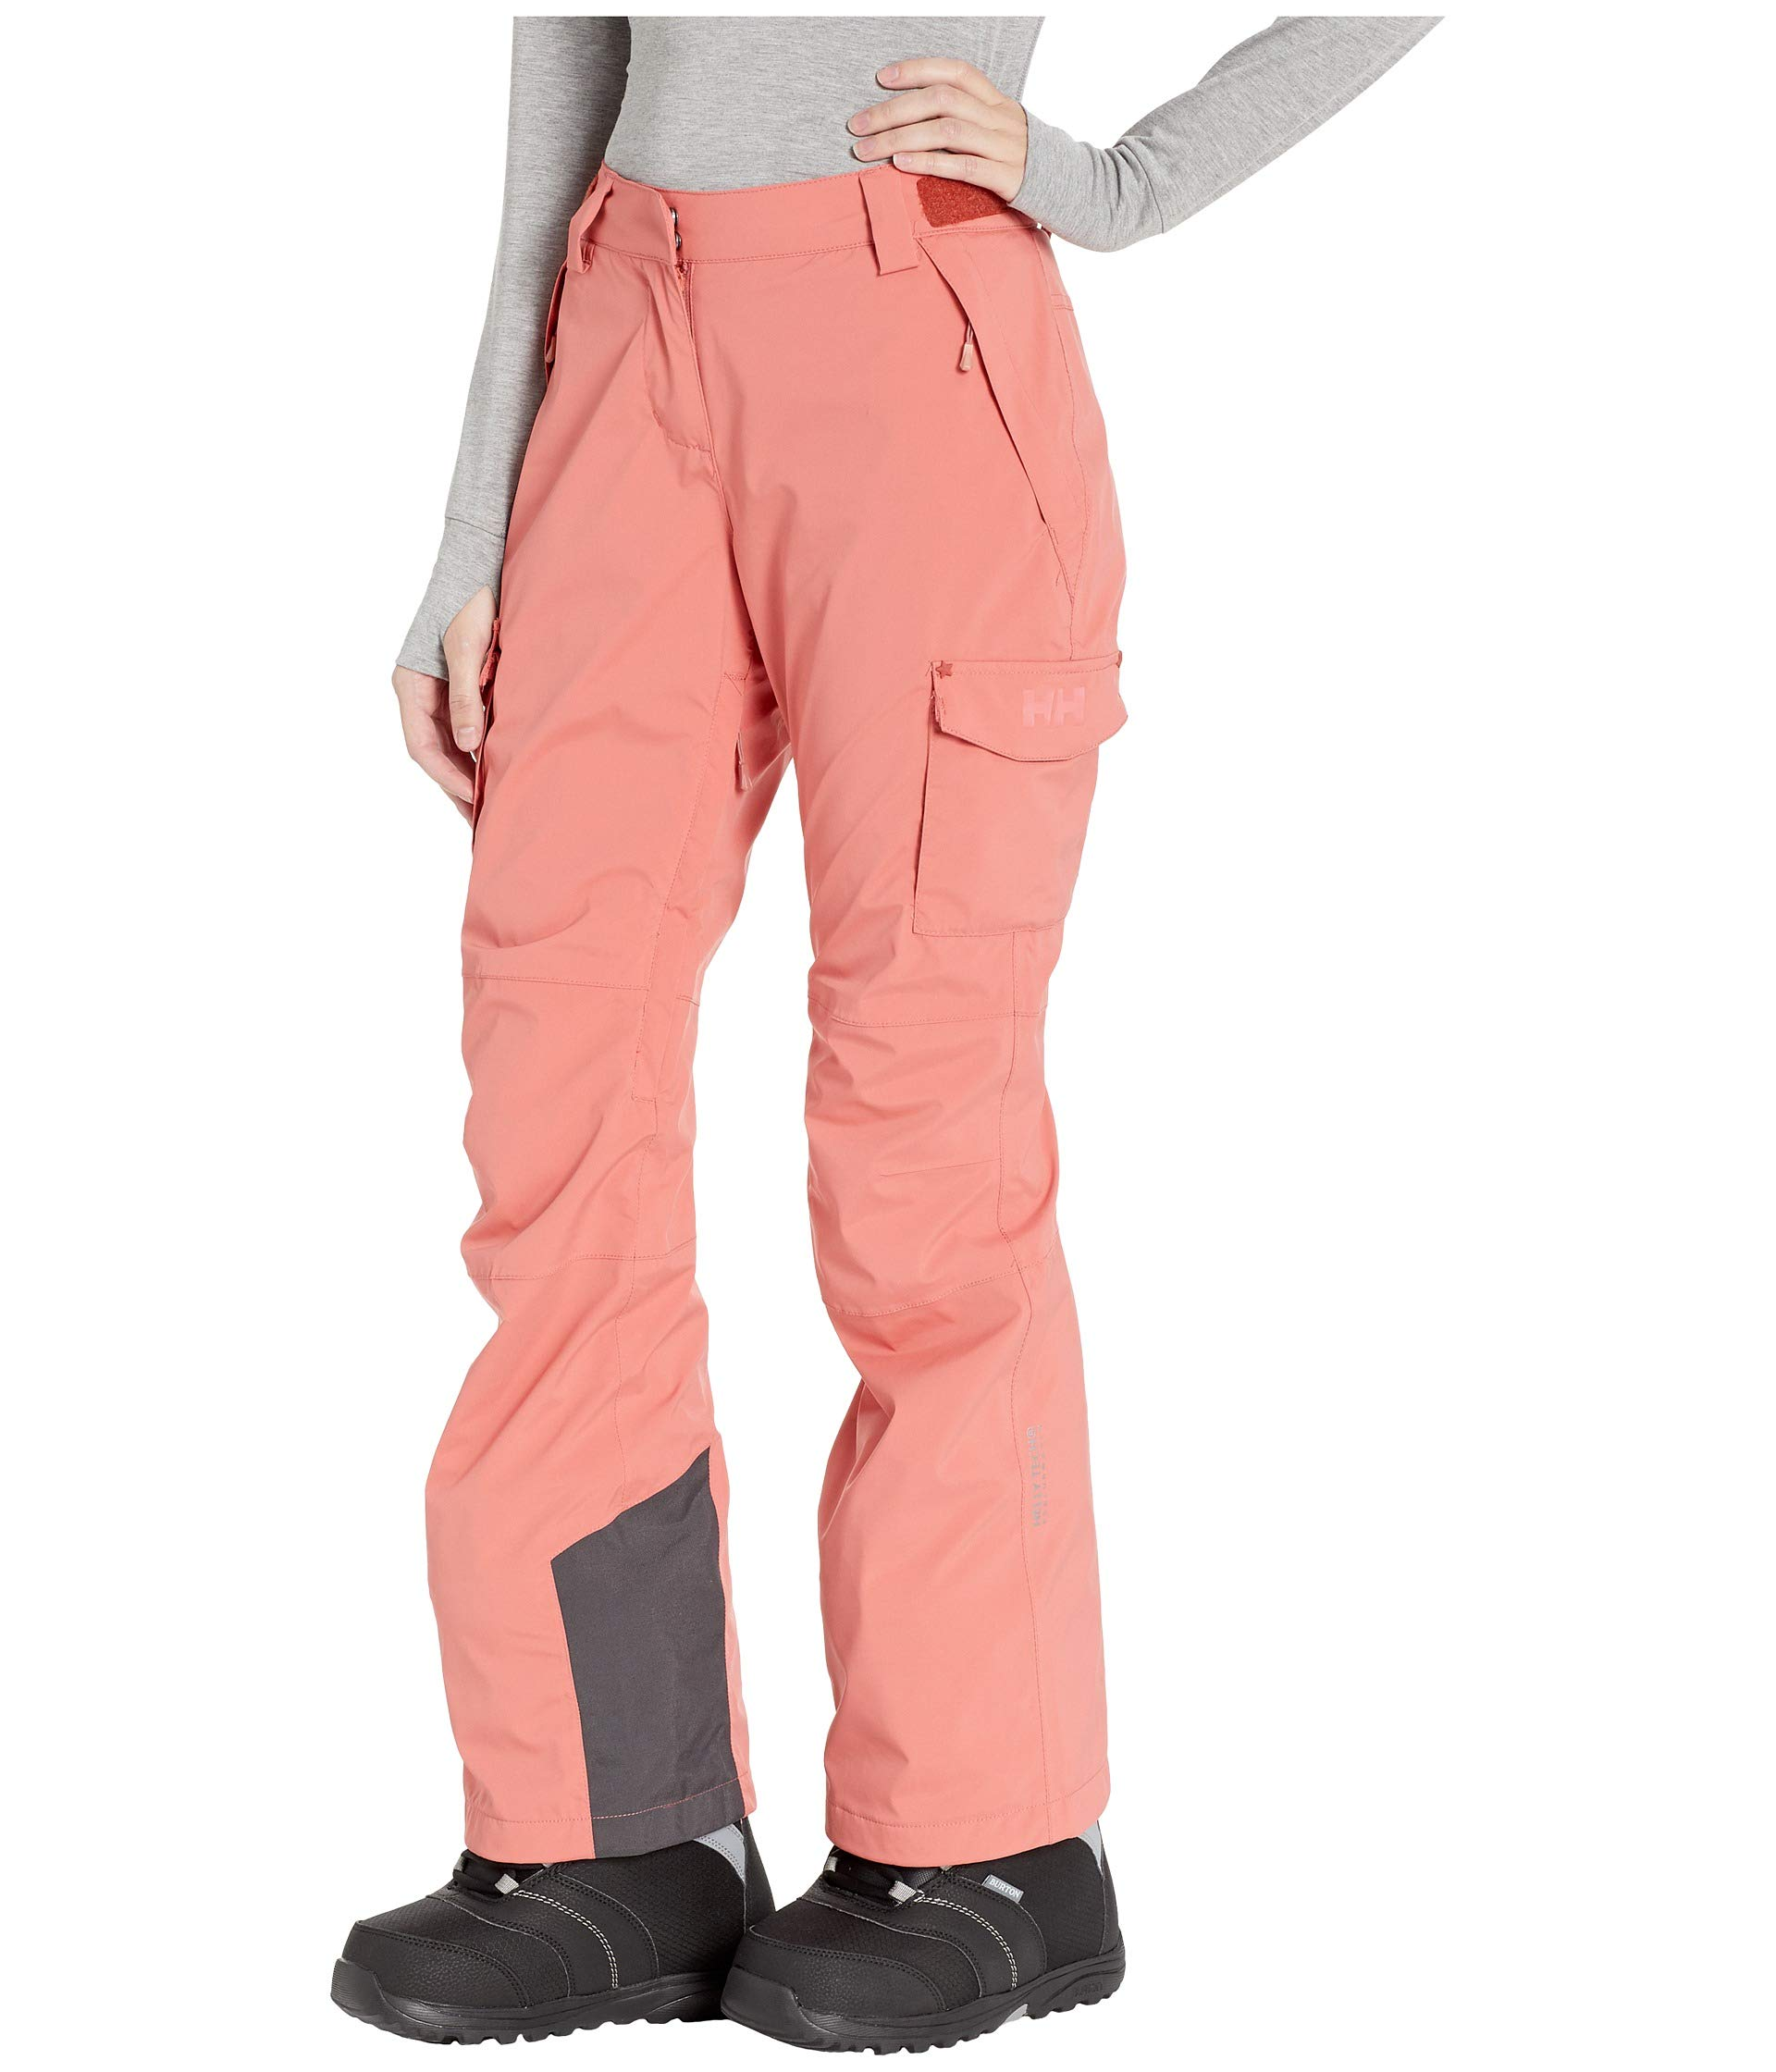 Faded Helly Pants Rose 0 2 Switch Hansen Cargo YxawxqAfF